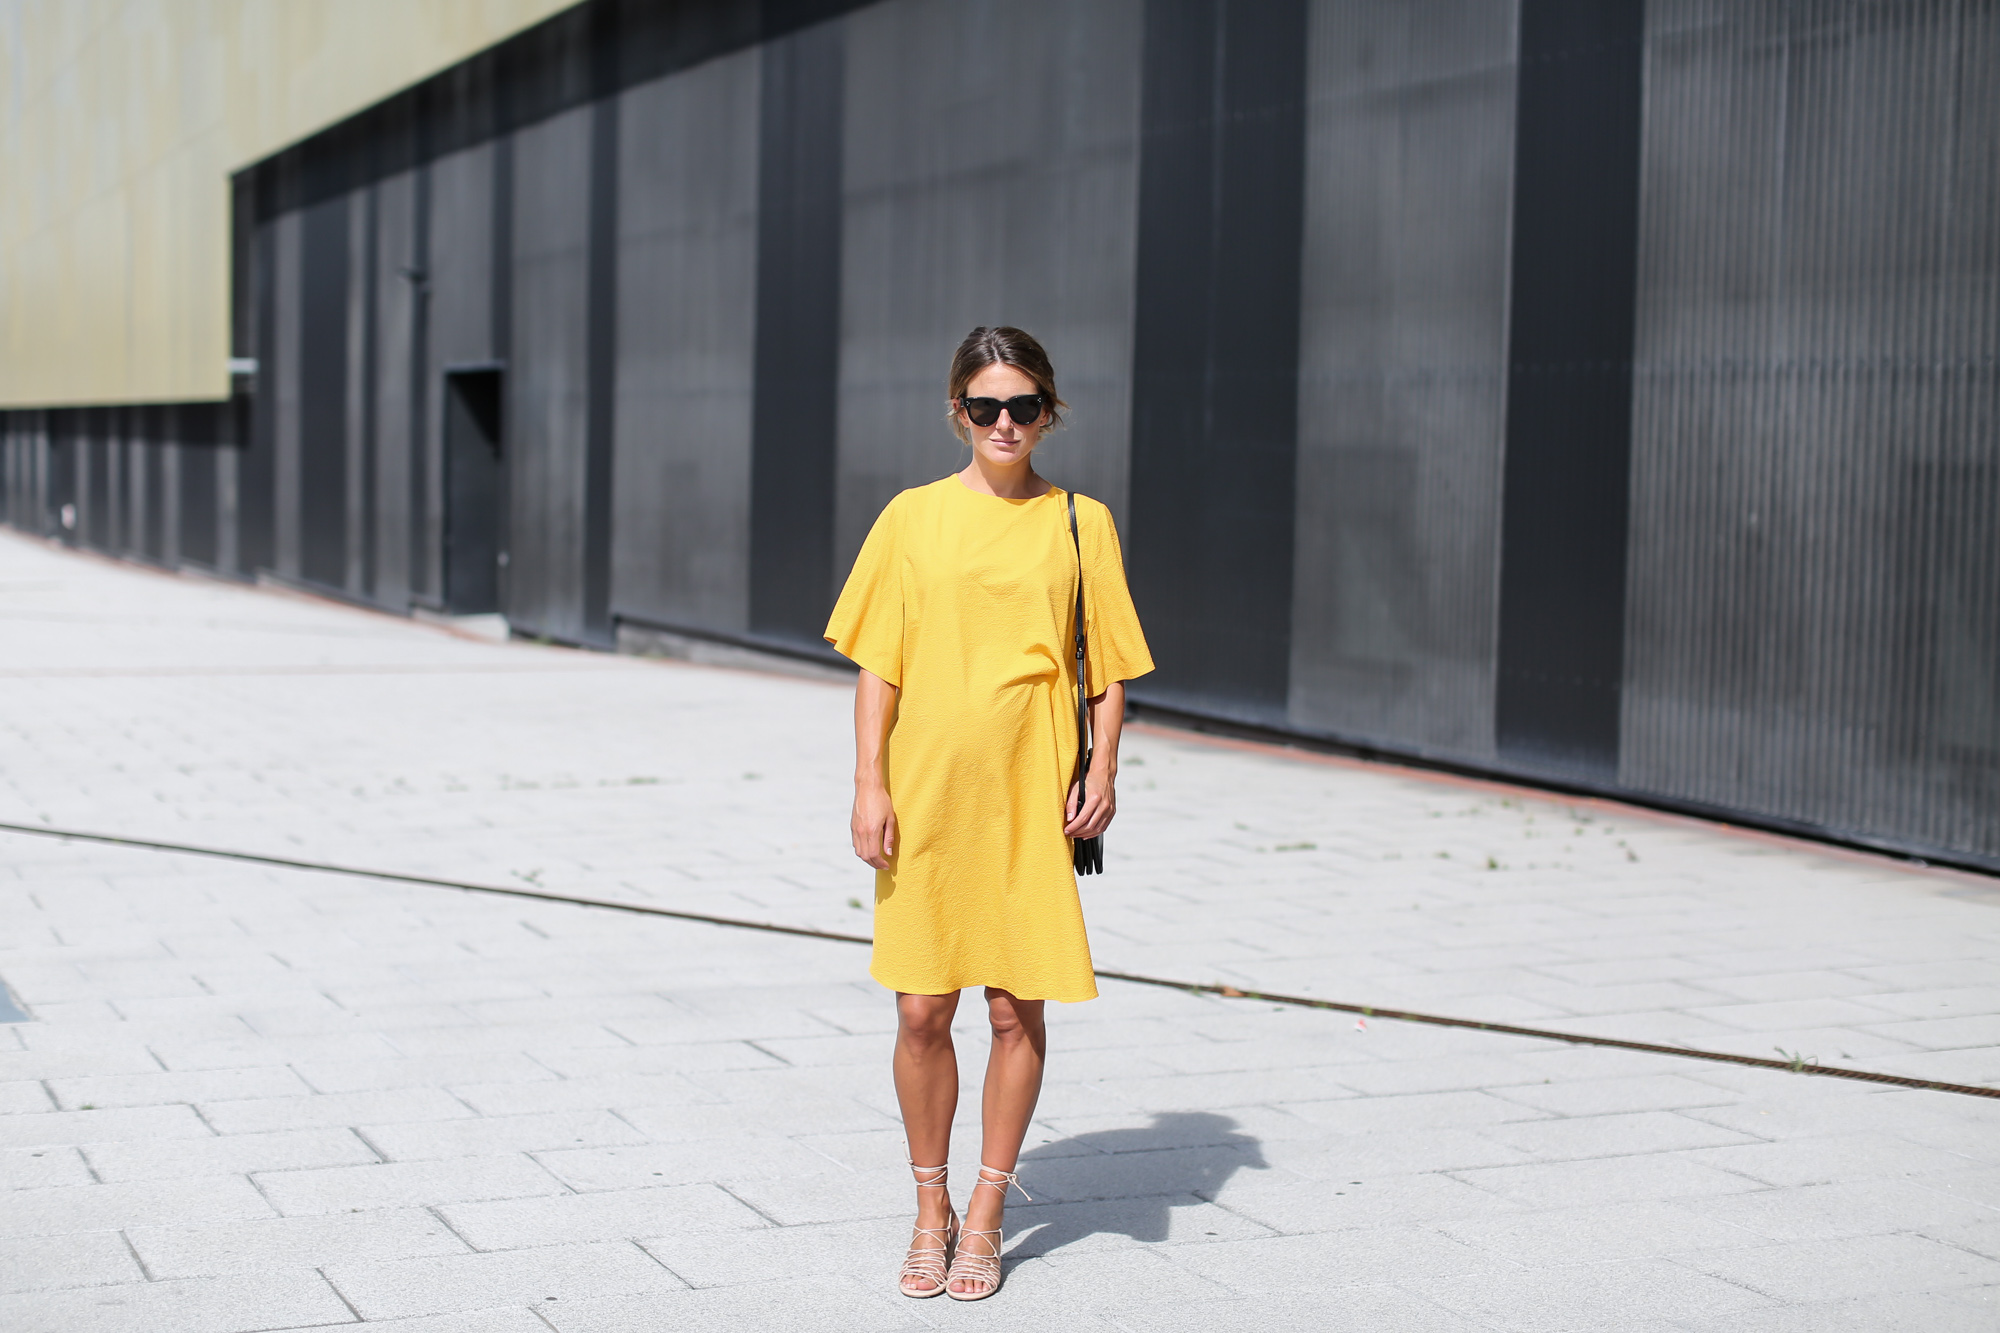 Clochet_streetstyle_fashionblogger_bilbao_zara_joinlife_yellow_minimaldress_celinetriobag-3